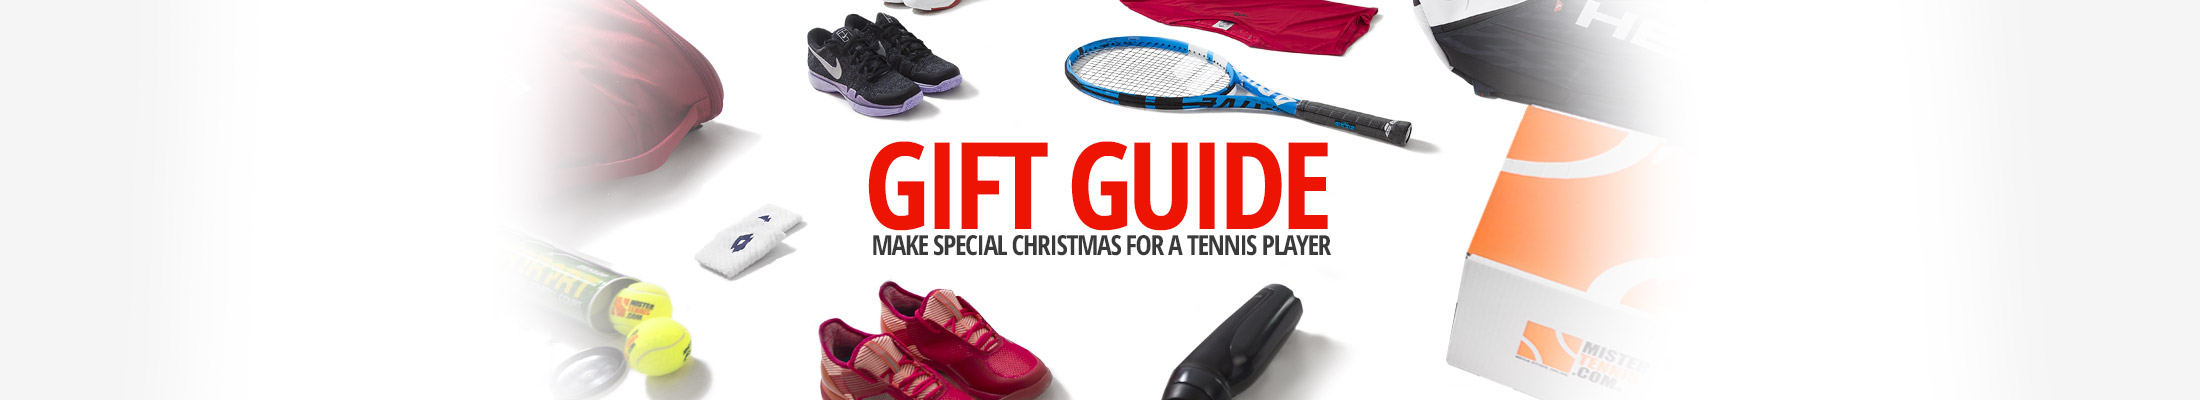 Tennis Gift Guide 2018